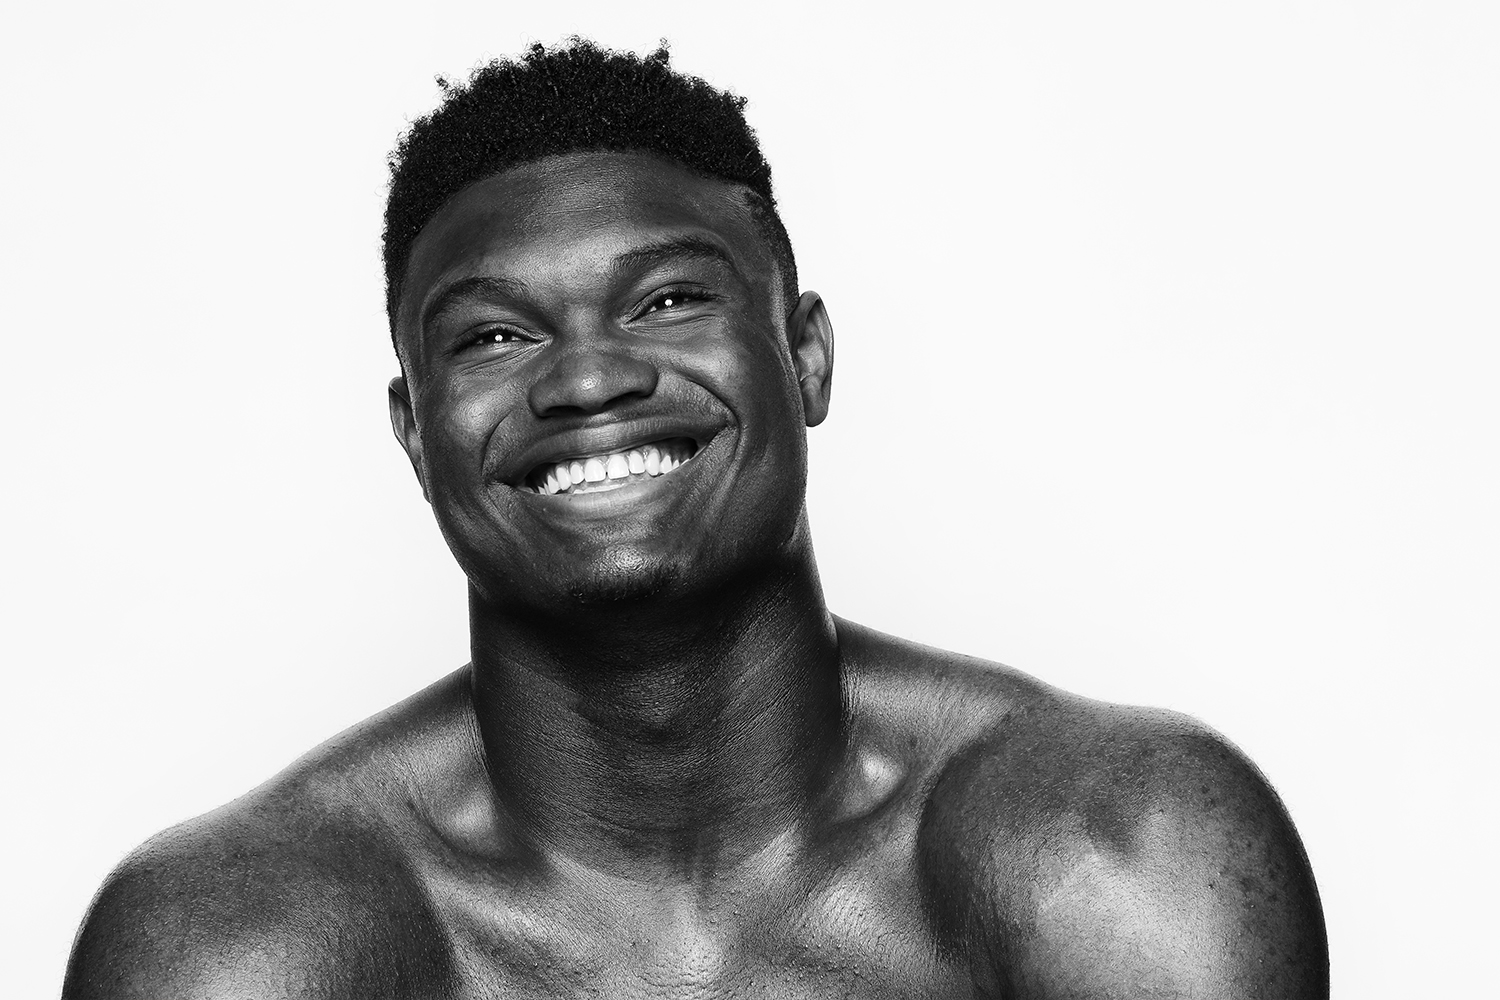 Ian Curcio photographs grinning NBA star Zion Williamson back in high school